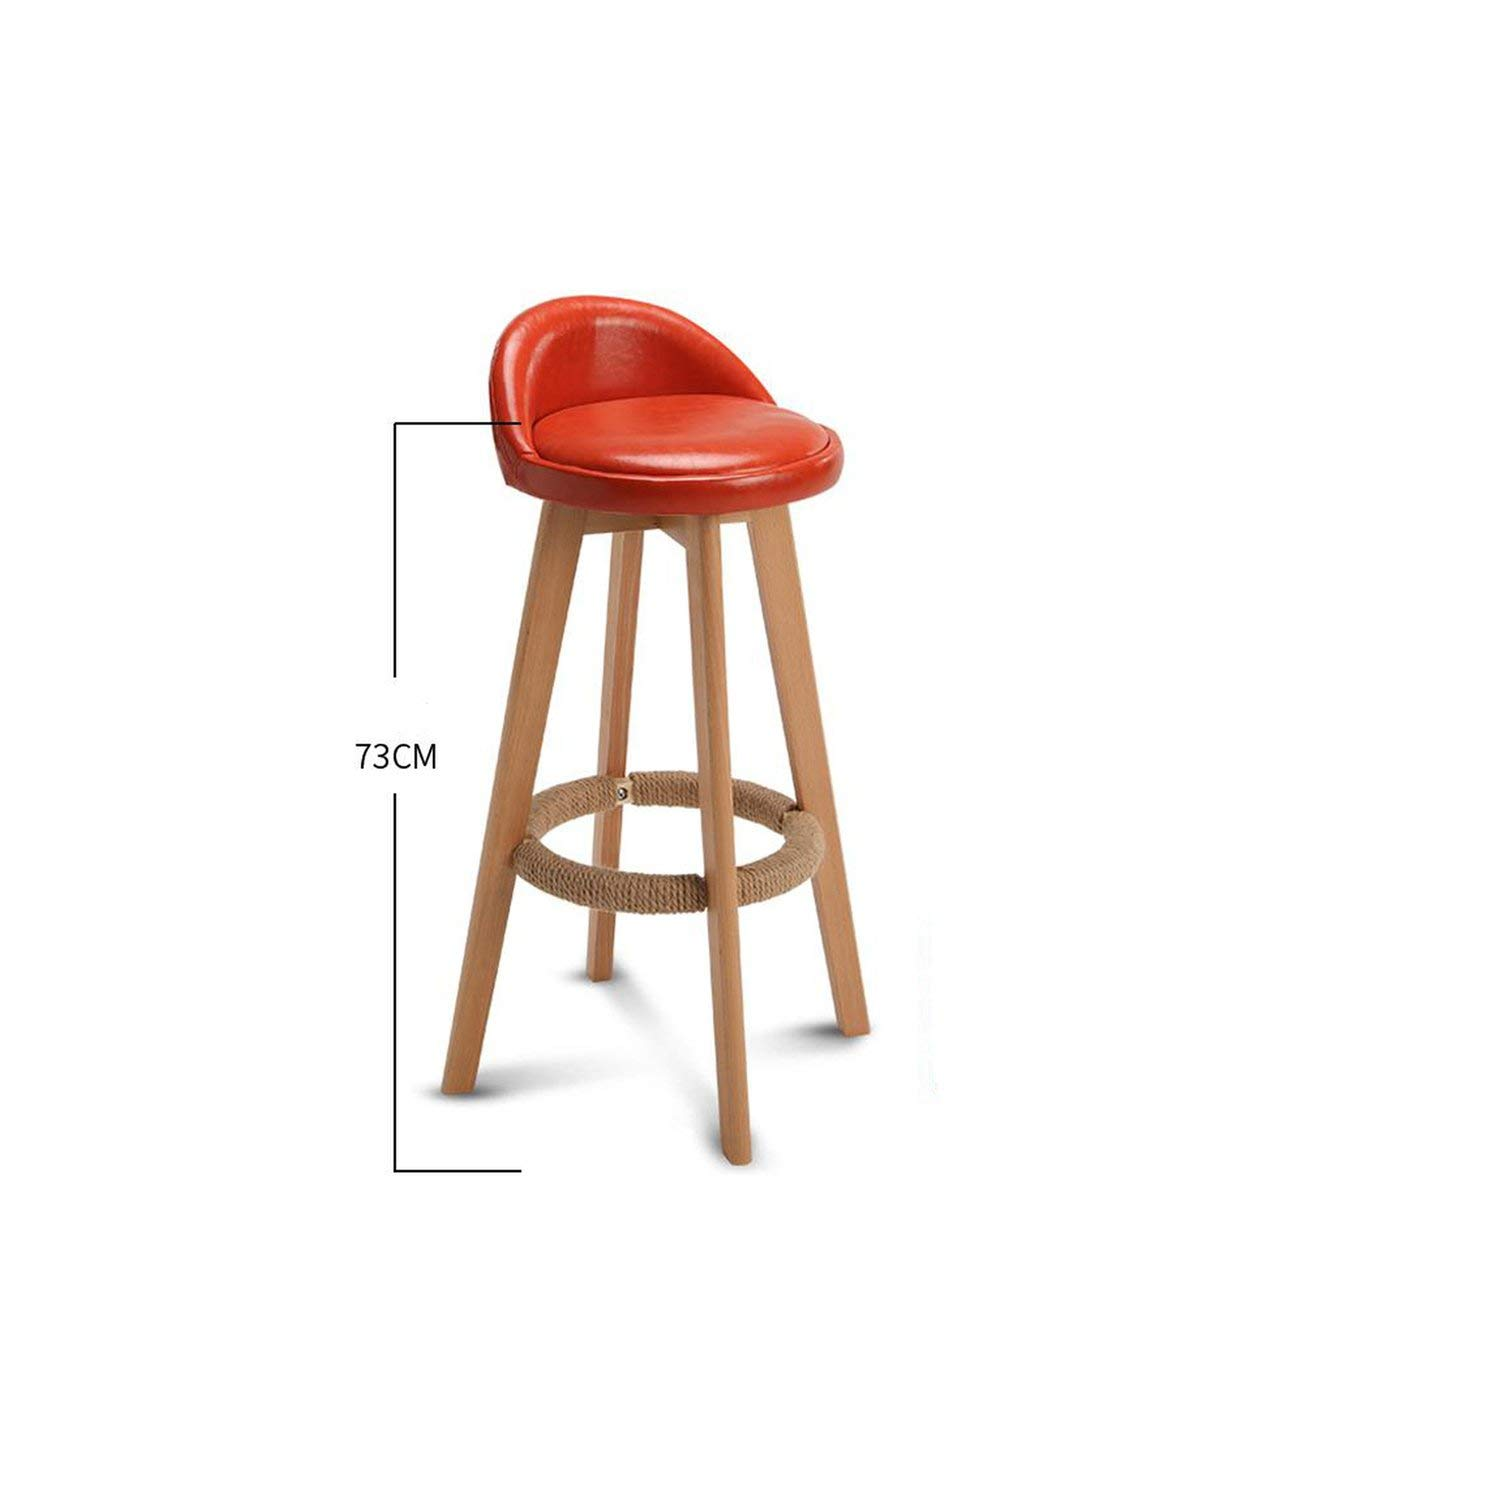 Style 6 tthappy76 Bar Stool Nordic Modern Minimalist Household Solid Wood High Stool Bar Stool Bar Chair Leisure Back Chair Stool,Style 8